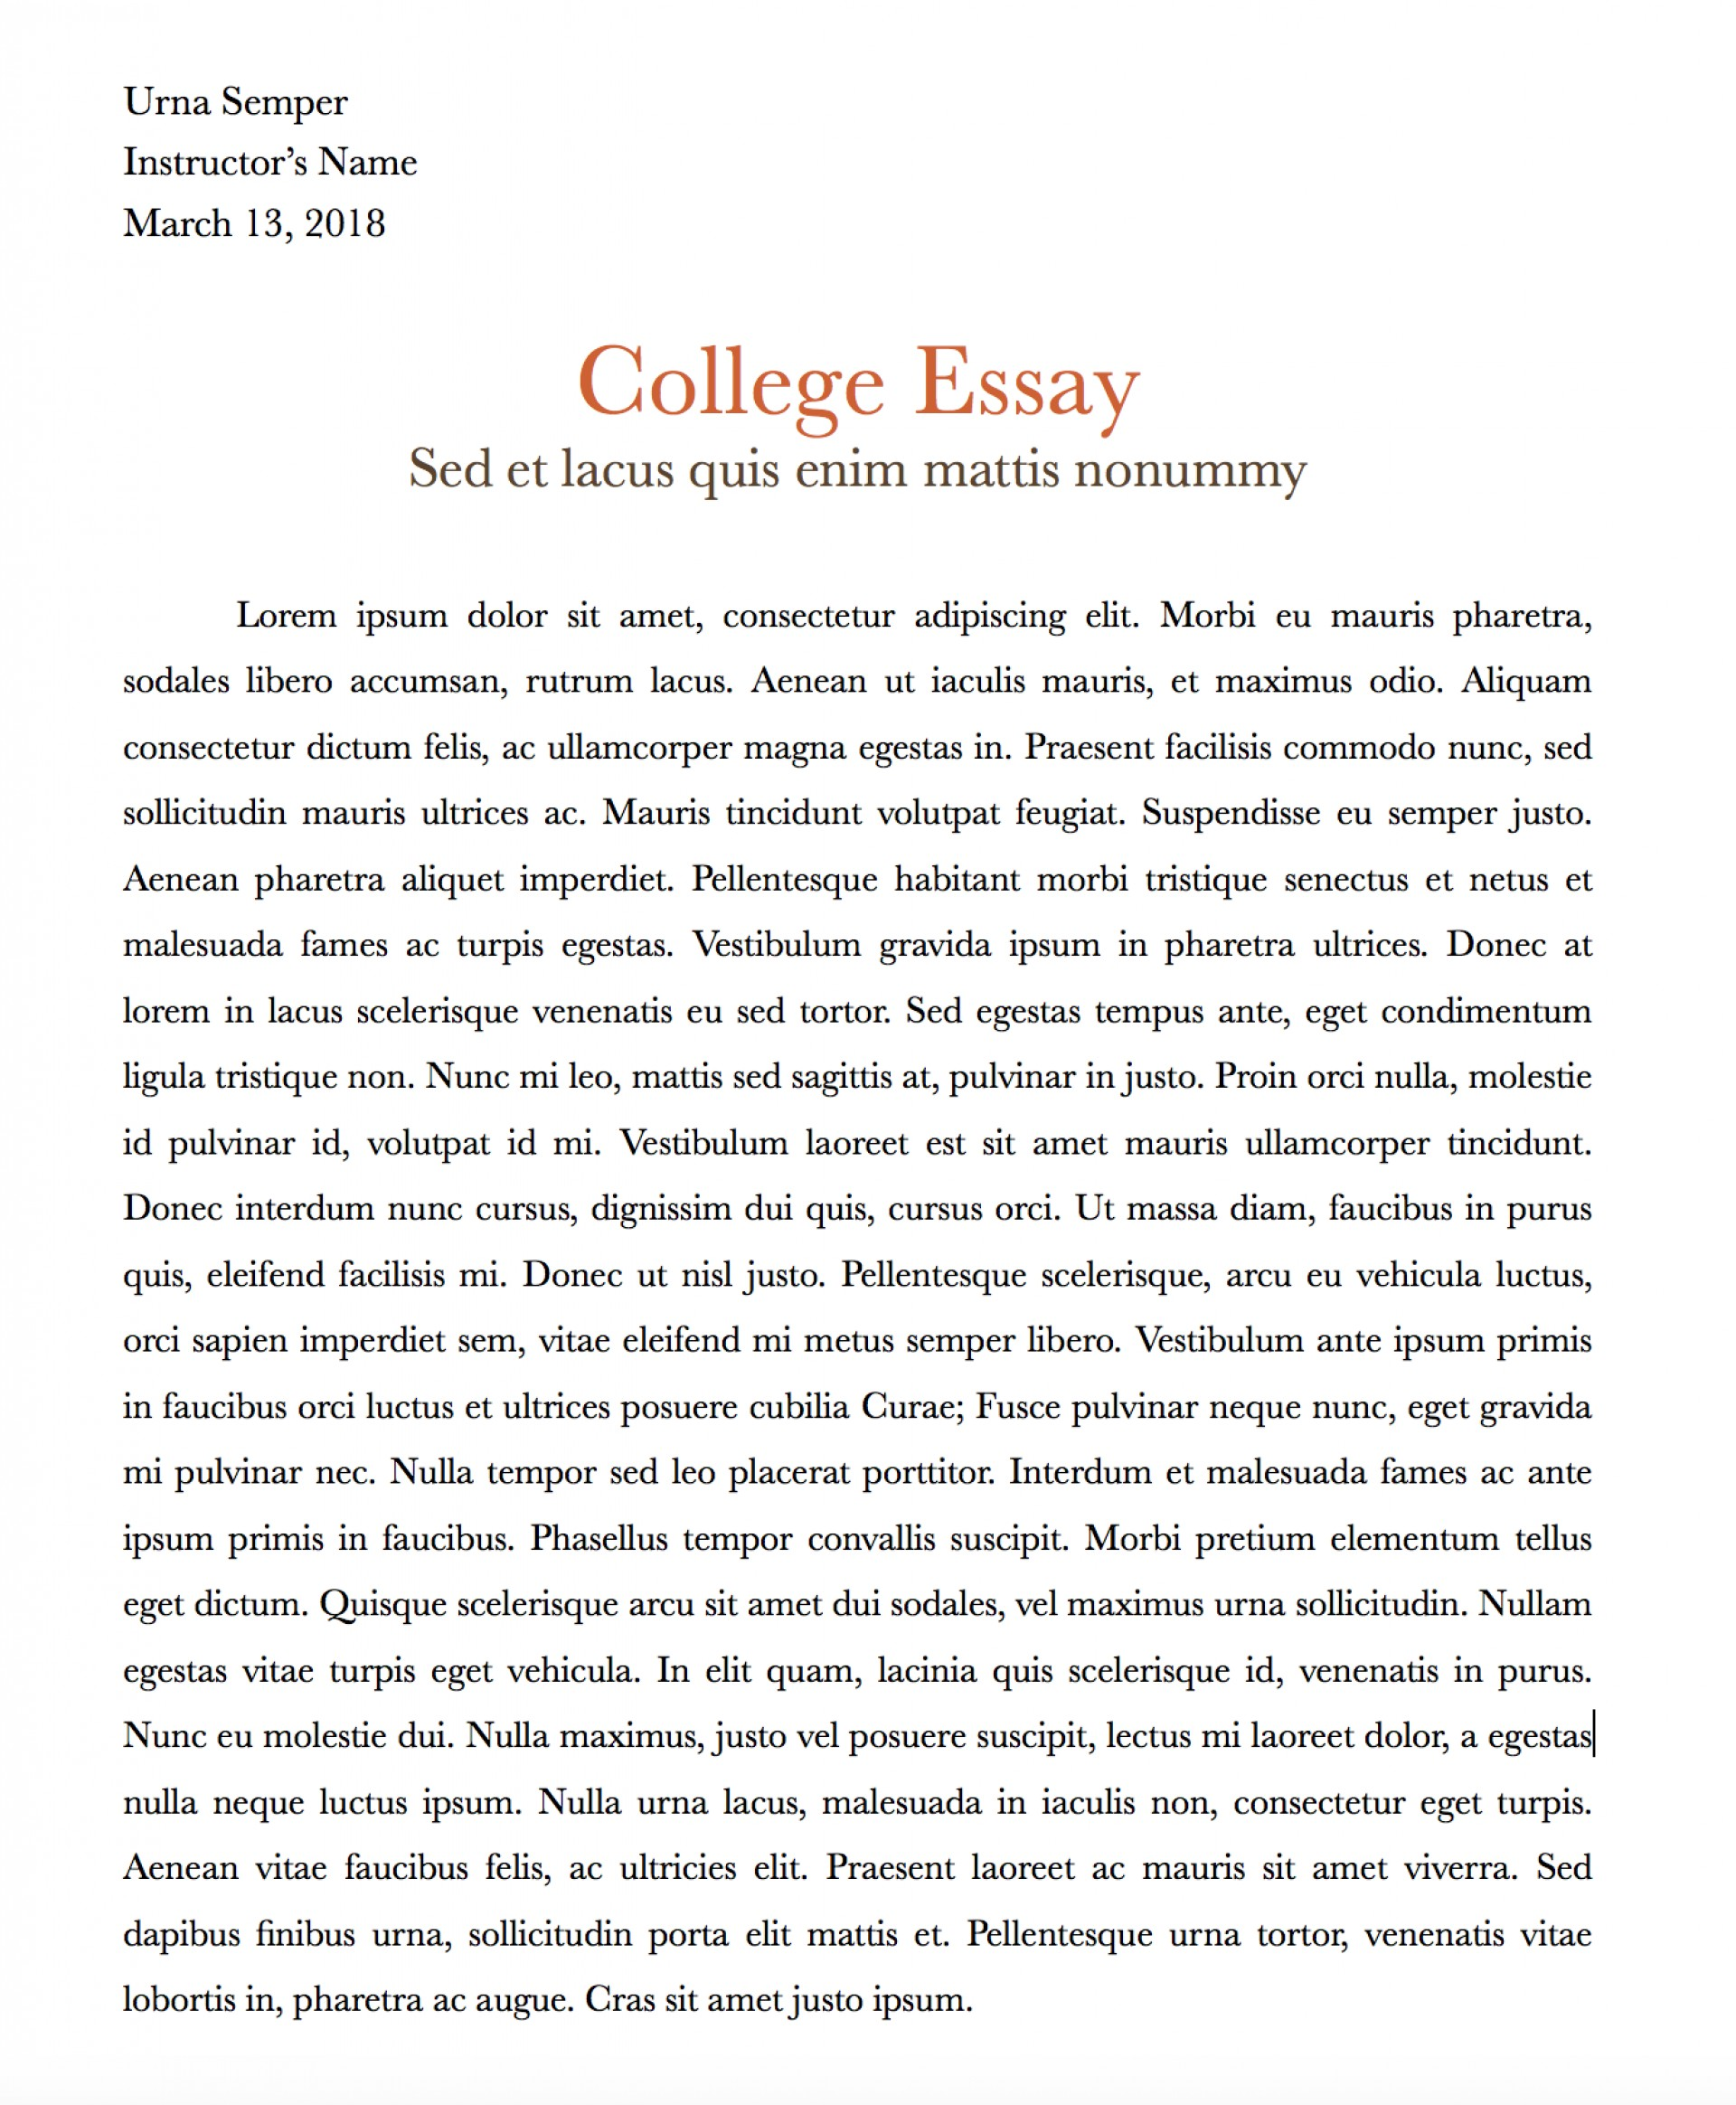 001 Essay Example Pj2rqggvsaub20rib6yp College With No Paragraphs What Do Colleges Look For In Unusual Essays Admissions Officers Want To Hear 1920